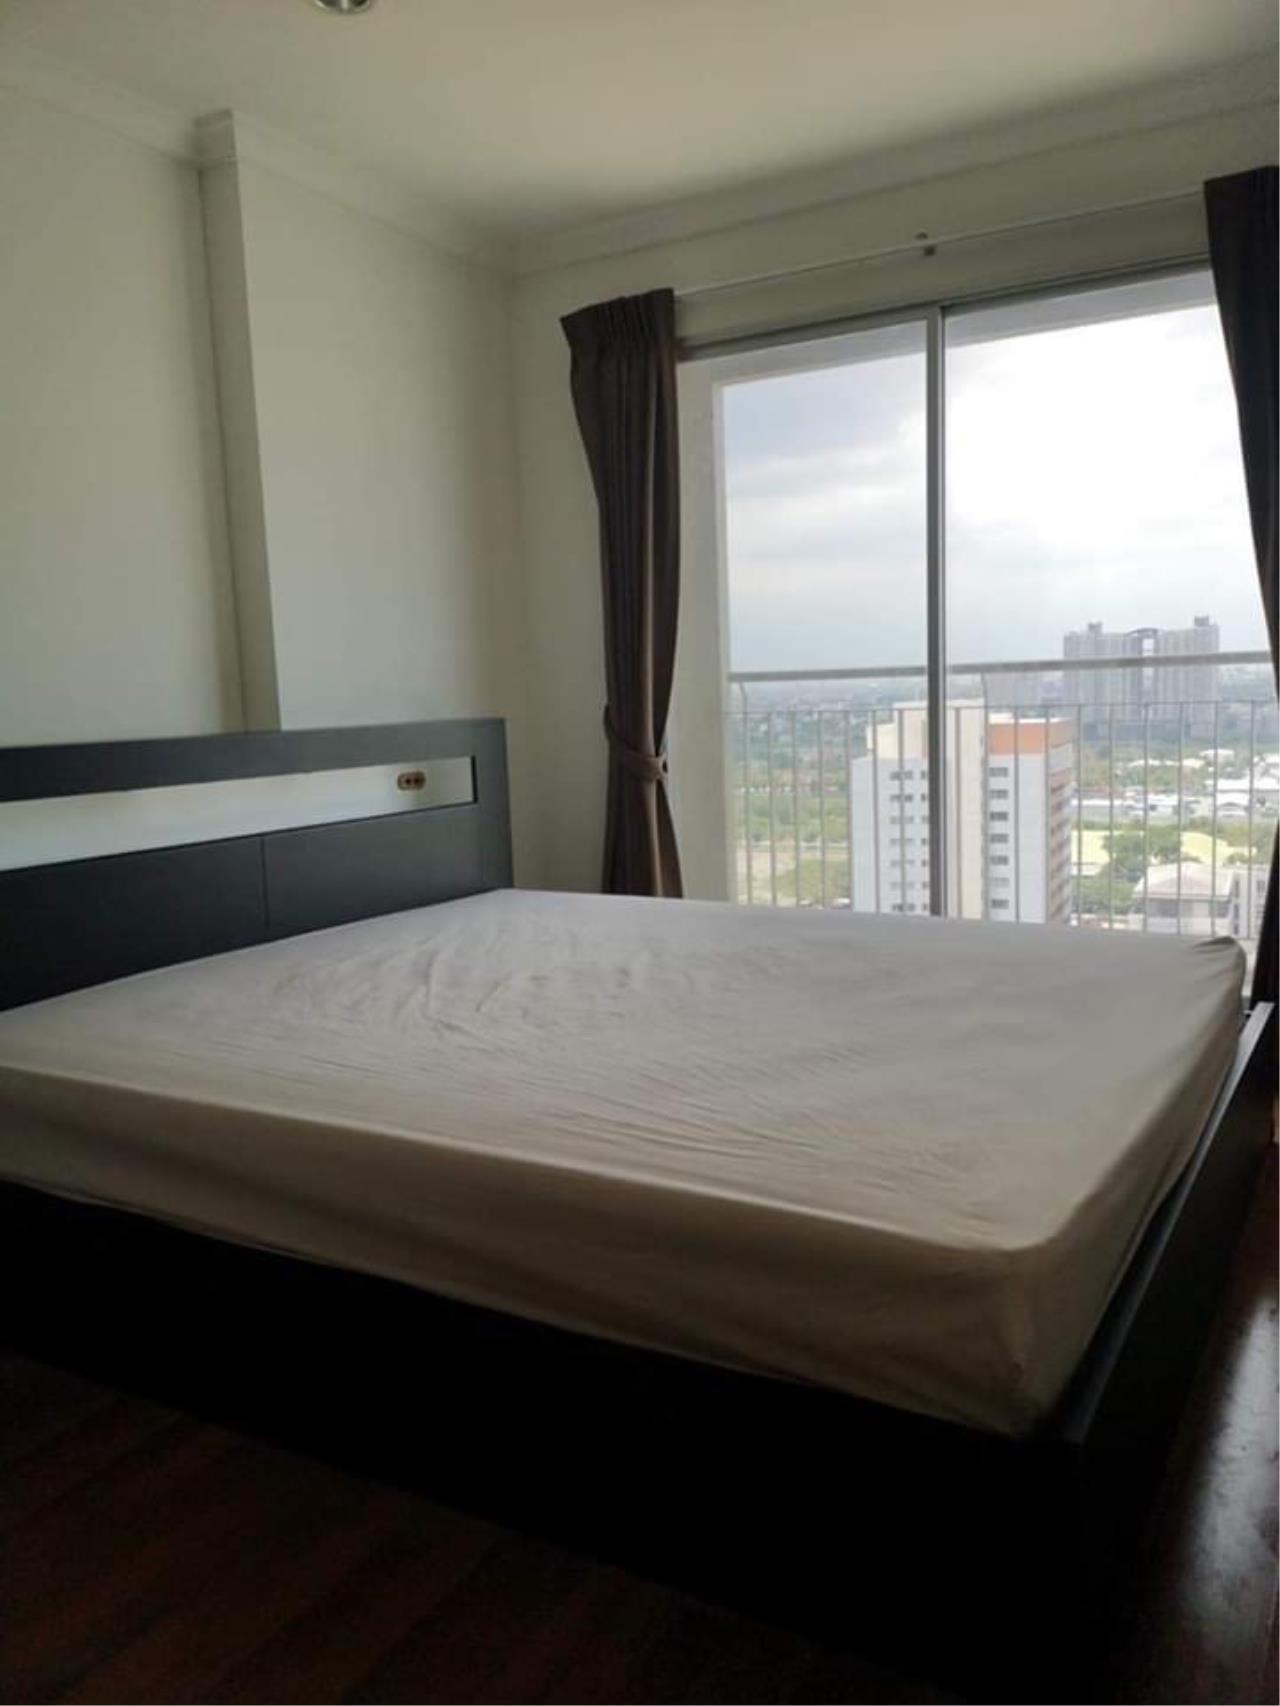 Agent - Phapayawarin Agency's Lumpini Place Rama IX-Ratchada for Rent, 1 Bedroom 1 Bathroom, 38 Sq.m., MRT Phraram 9  4